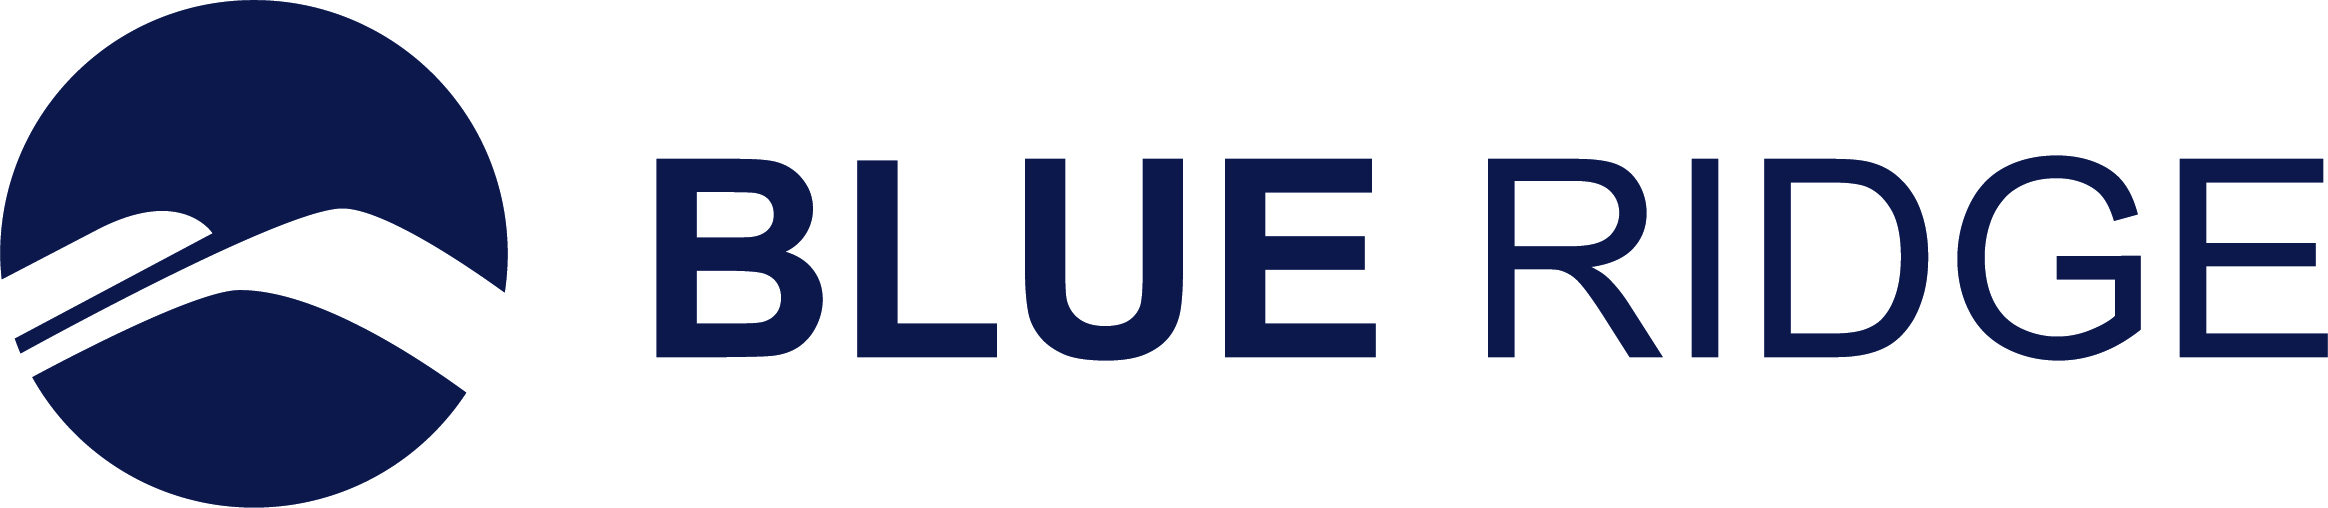 Blue Ridge CMO Ed Rusch Sees Integrating Pricing Strategy with Supply Chain Management Beneficial to Distributors, Retailers and Discrete Manufacturers